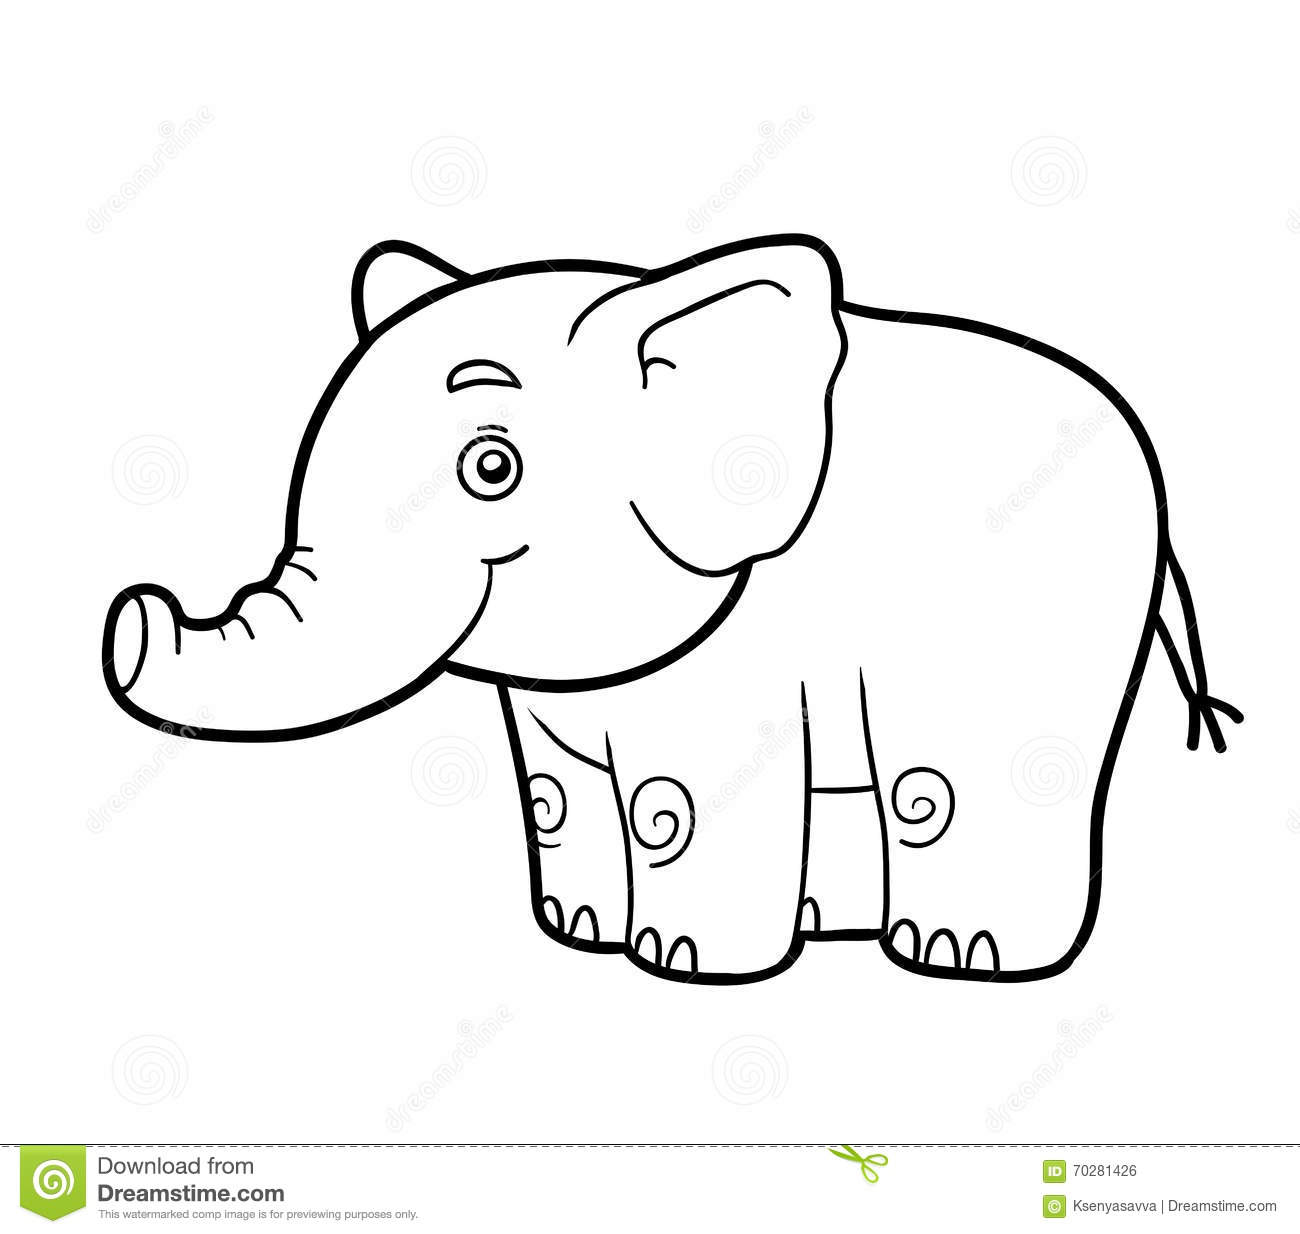 Coloring book, coloring page (elephant)